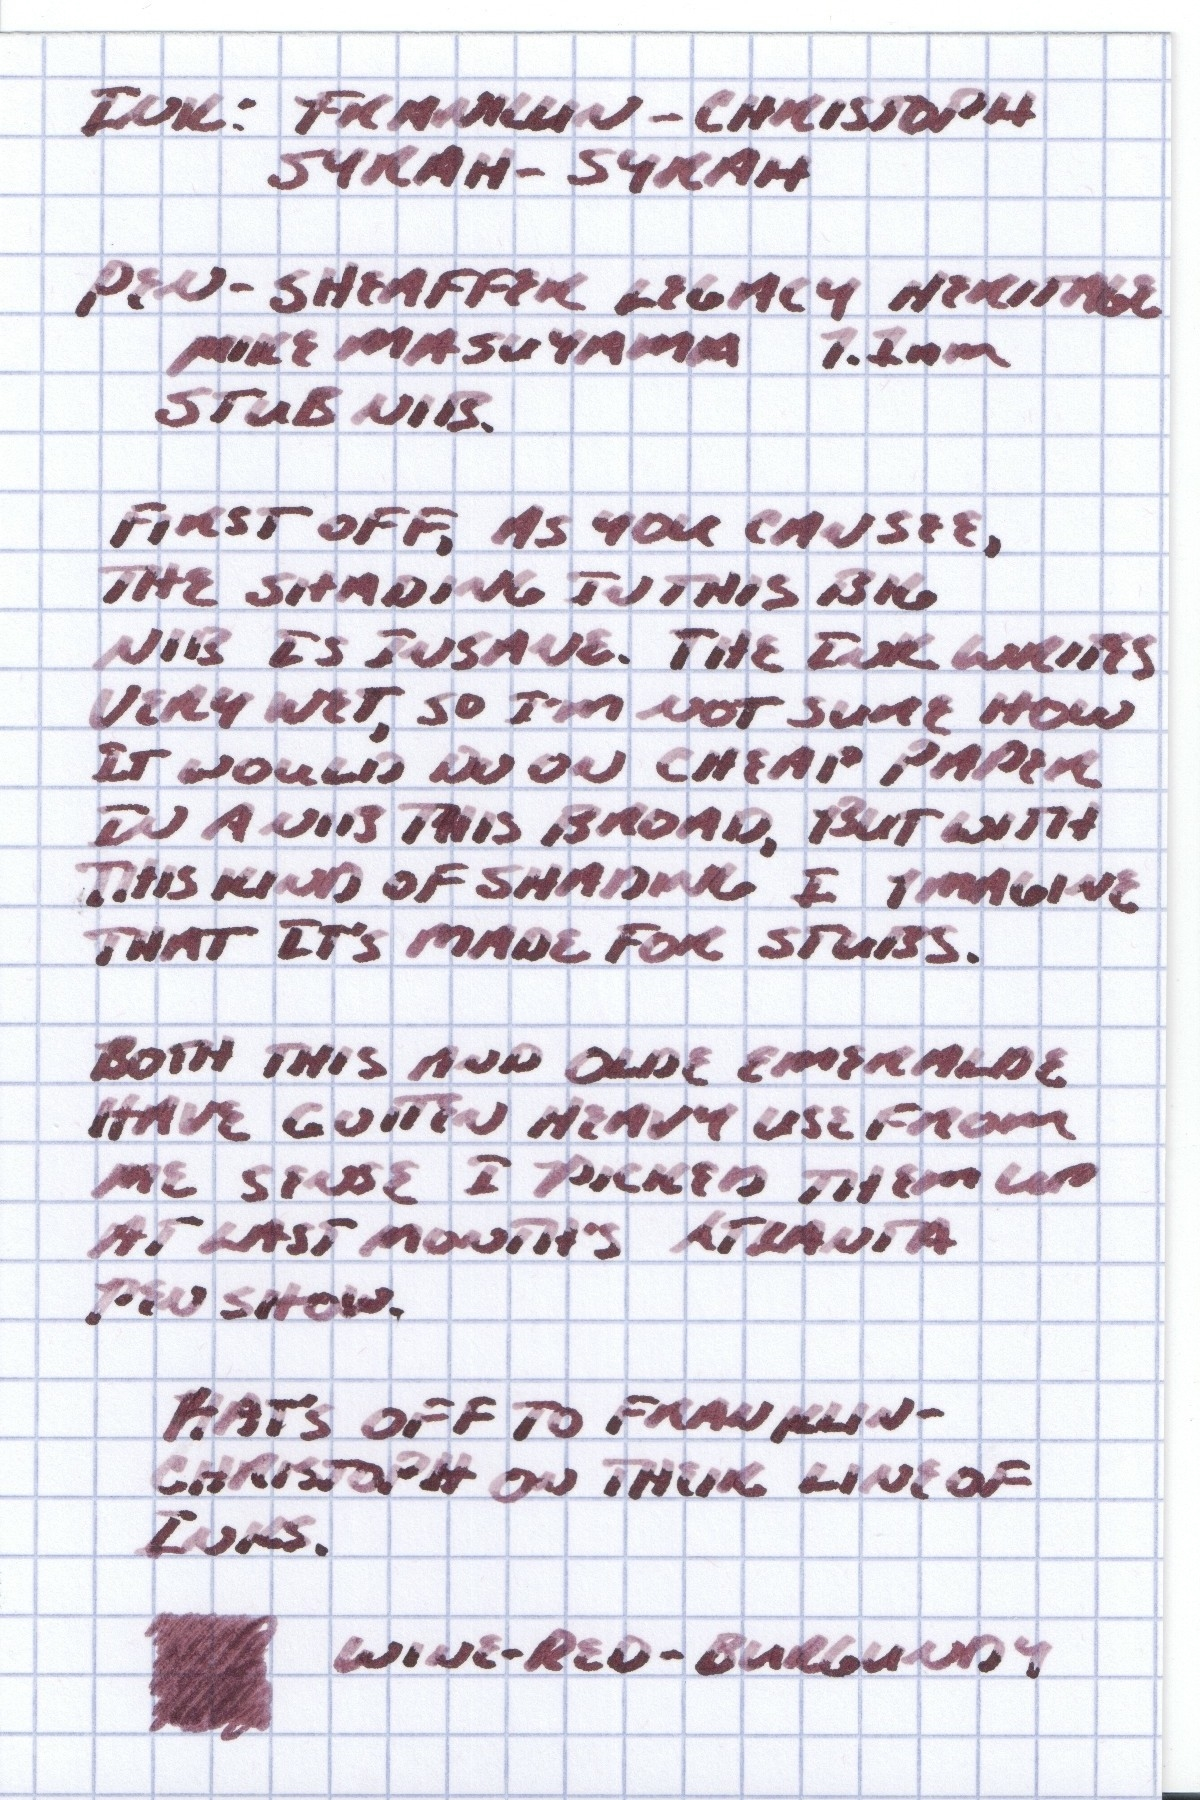 Franklin-Christoph Syrah-Syrah Handwritten Review